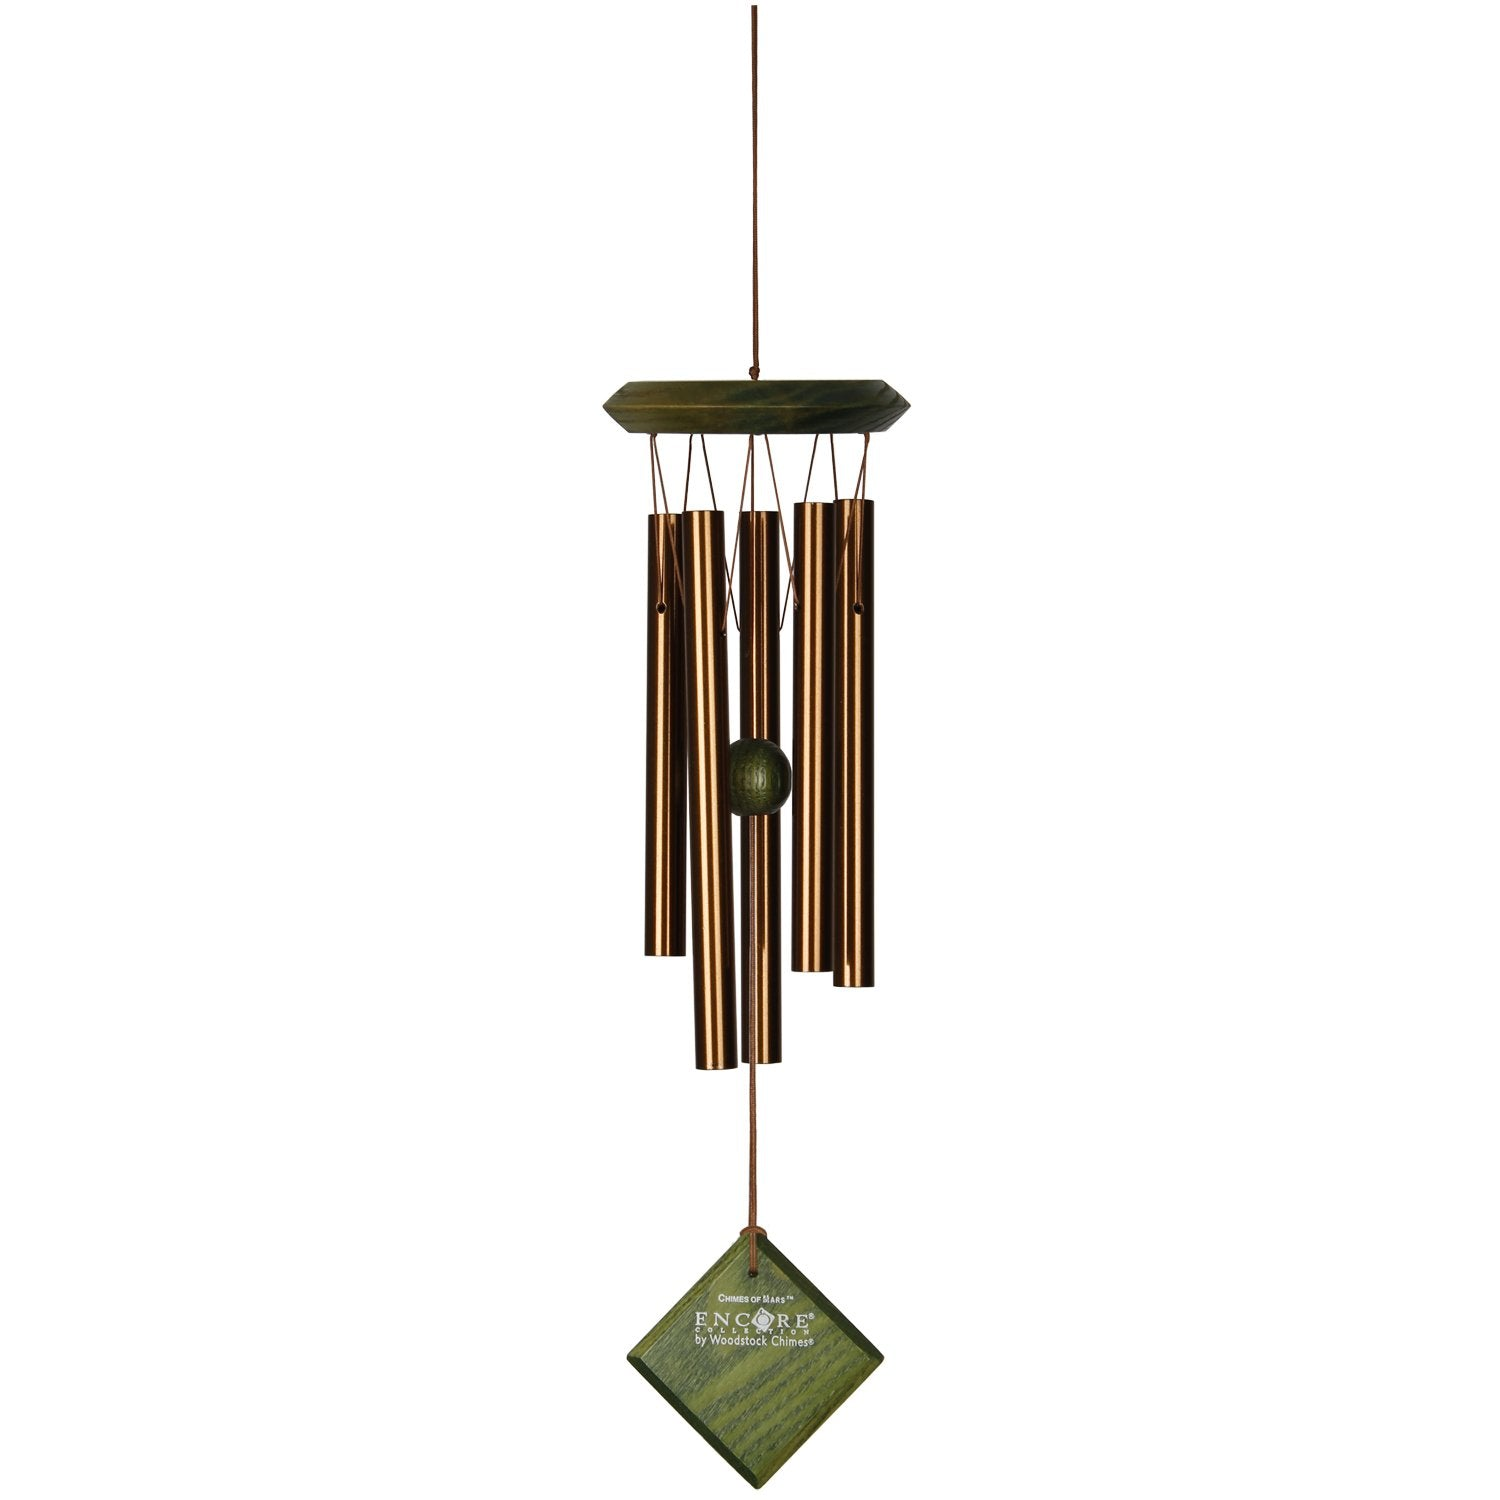 Encore Chimes of Mars - Green Wash full product image